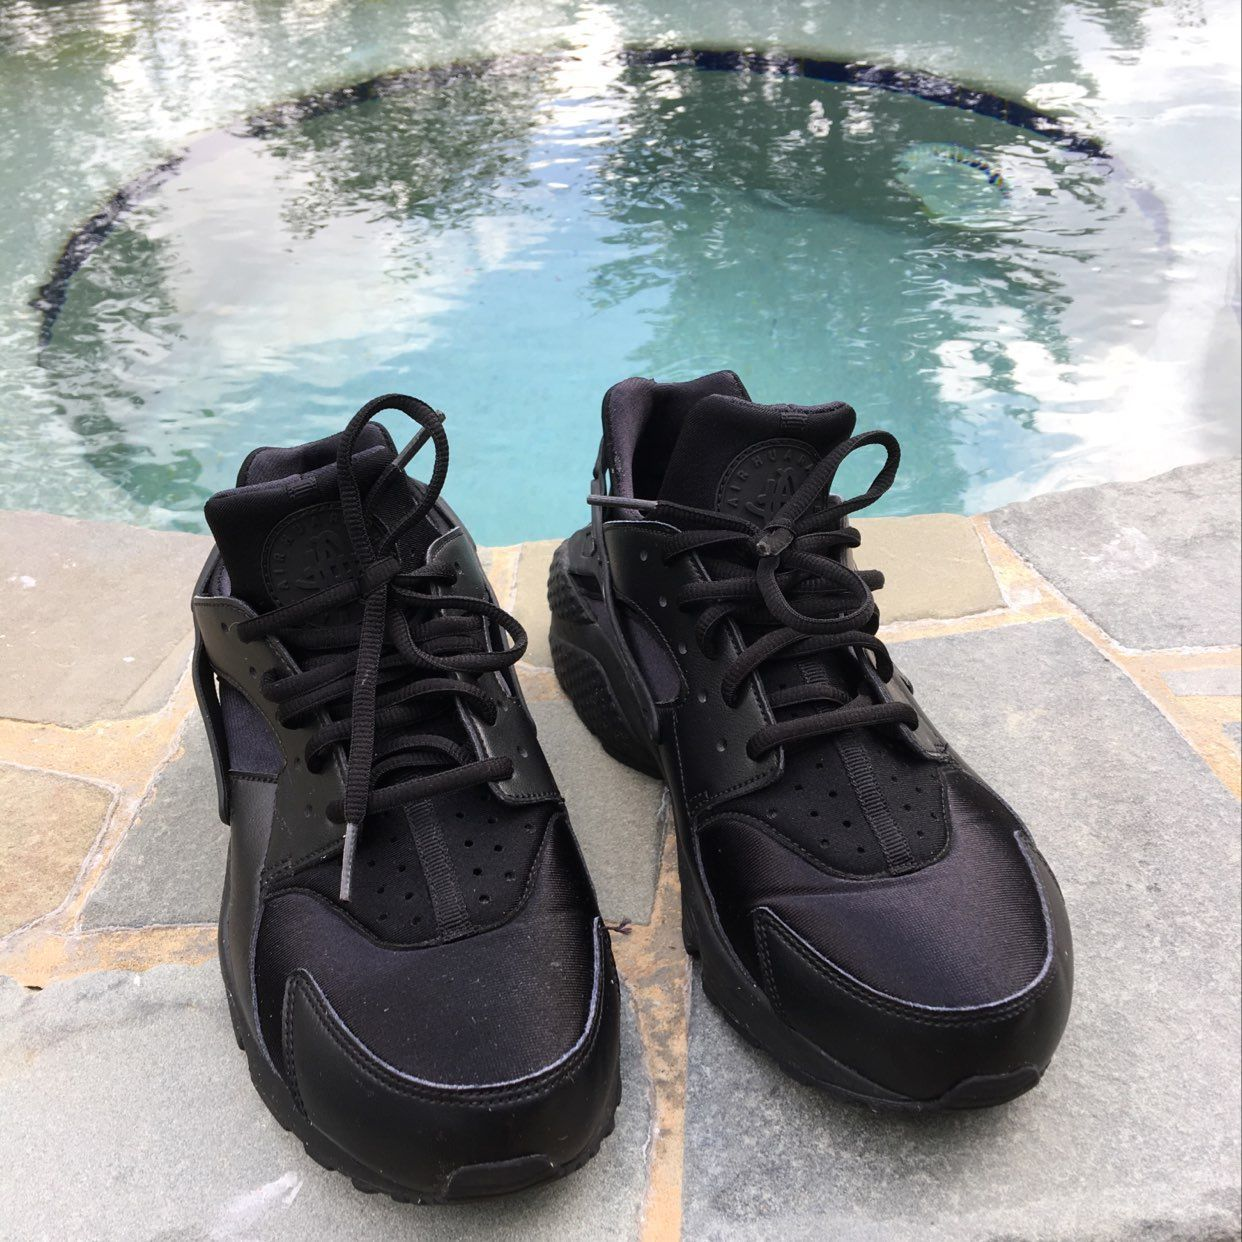 0c5f88d2ef974 ... 50% off nike huarache brand new no box paid 110 from footlocker for  them 888dd